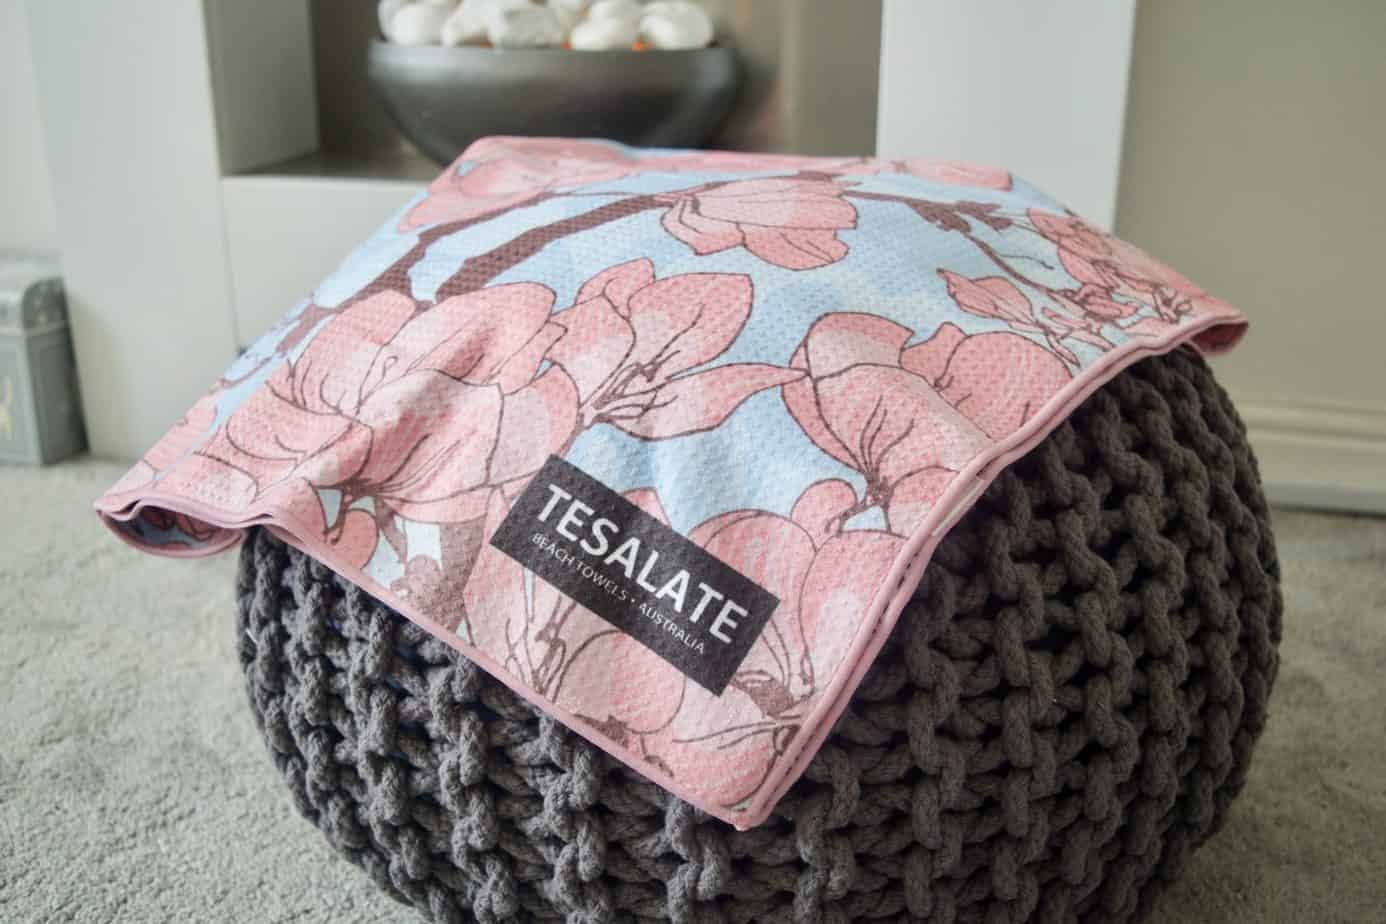 Tesalate Towel - perfect gift for mothers day 2019.